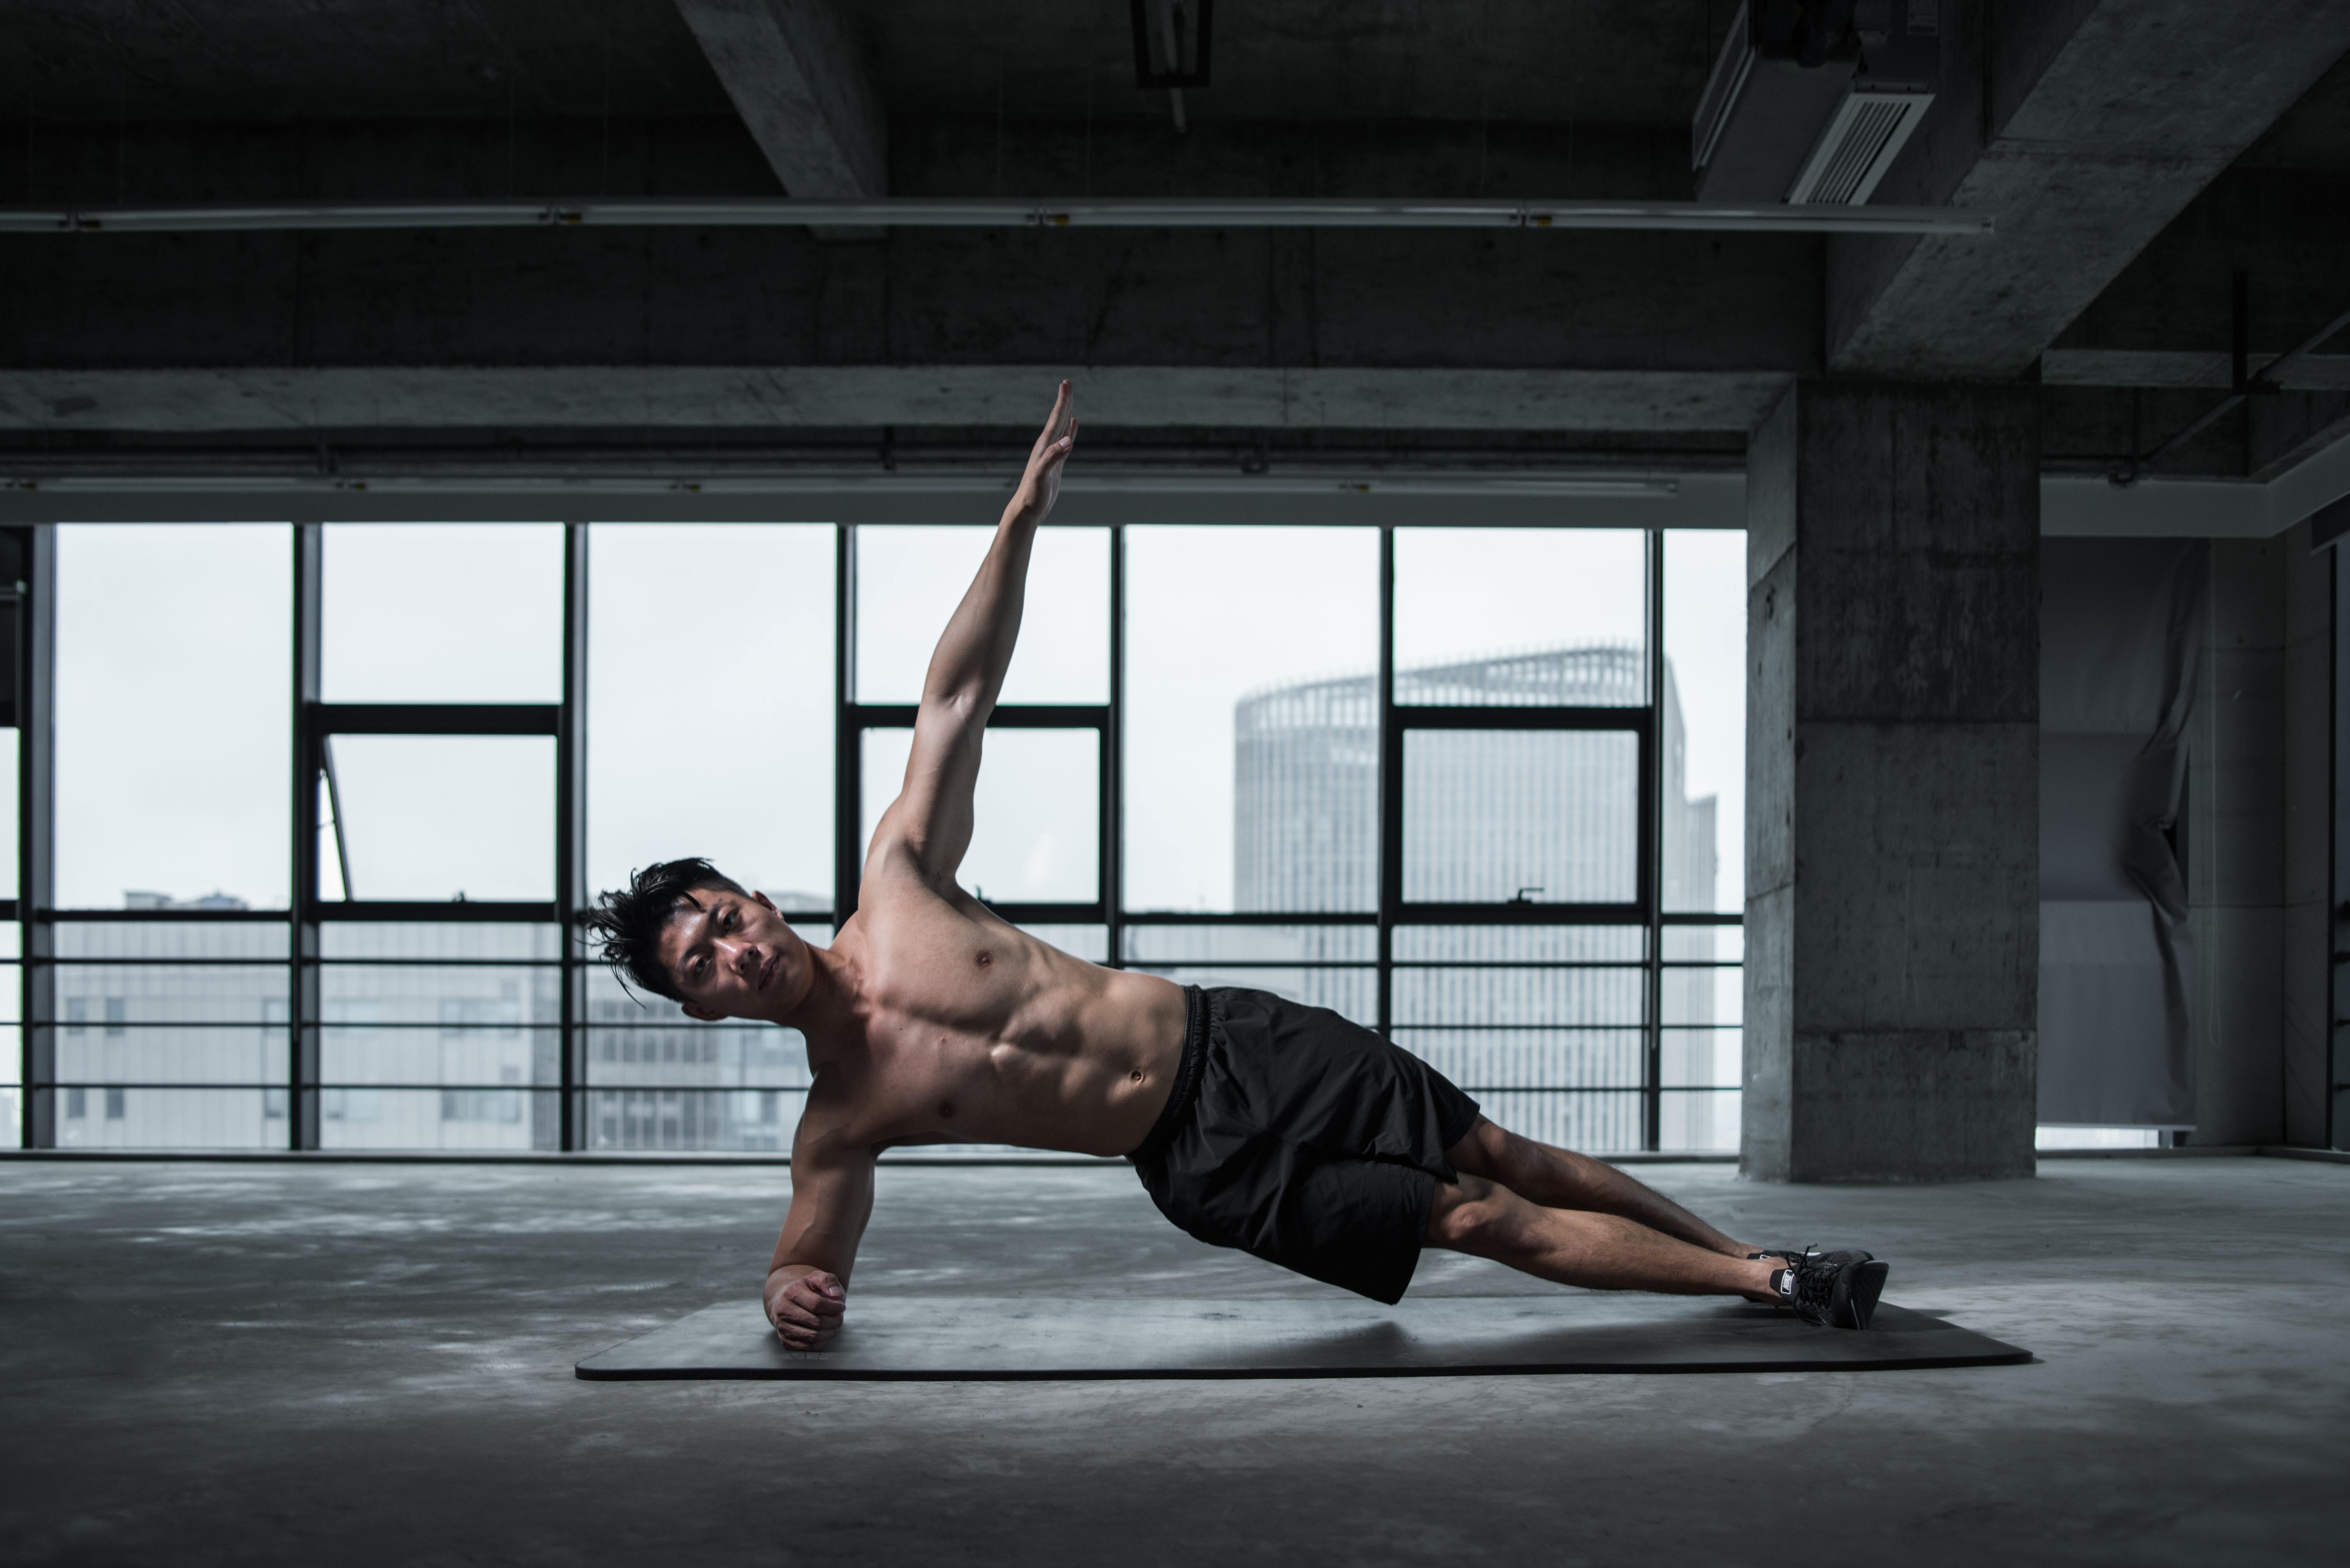 Man doing a side plank for his calisthenics core workout